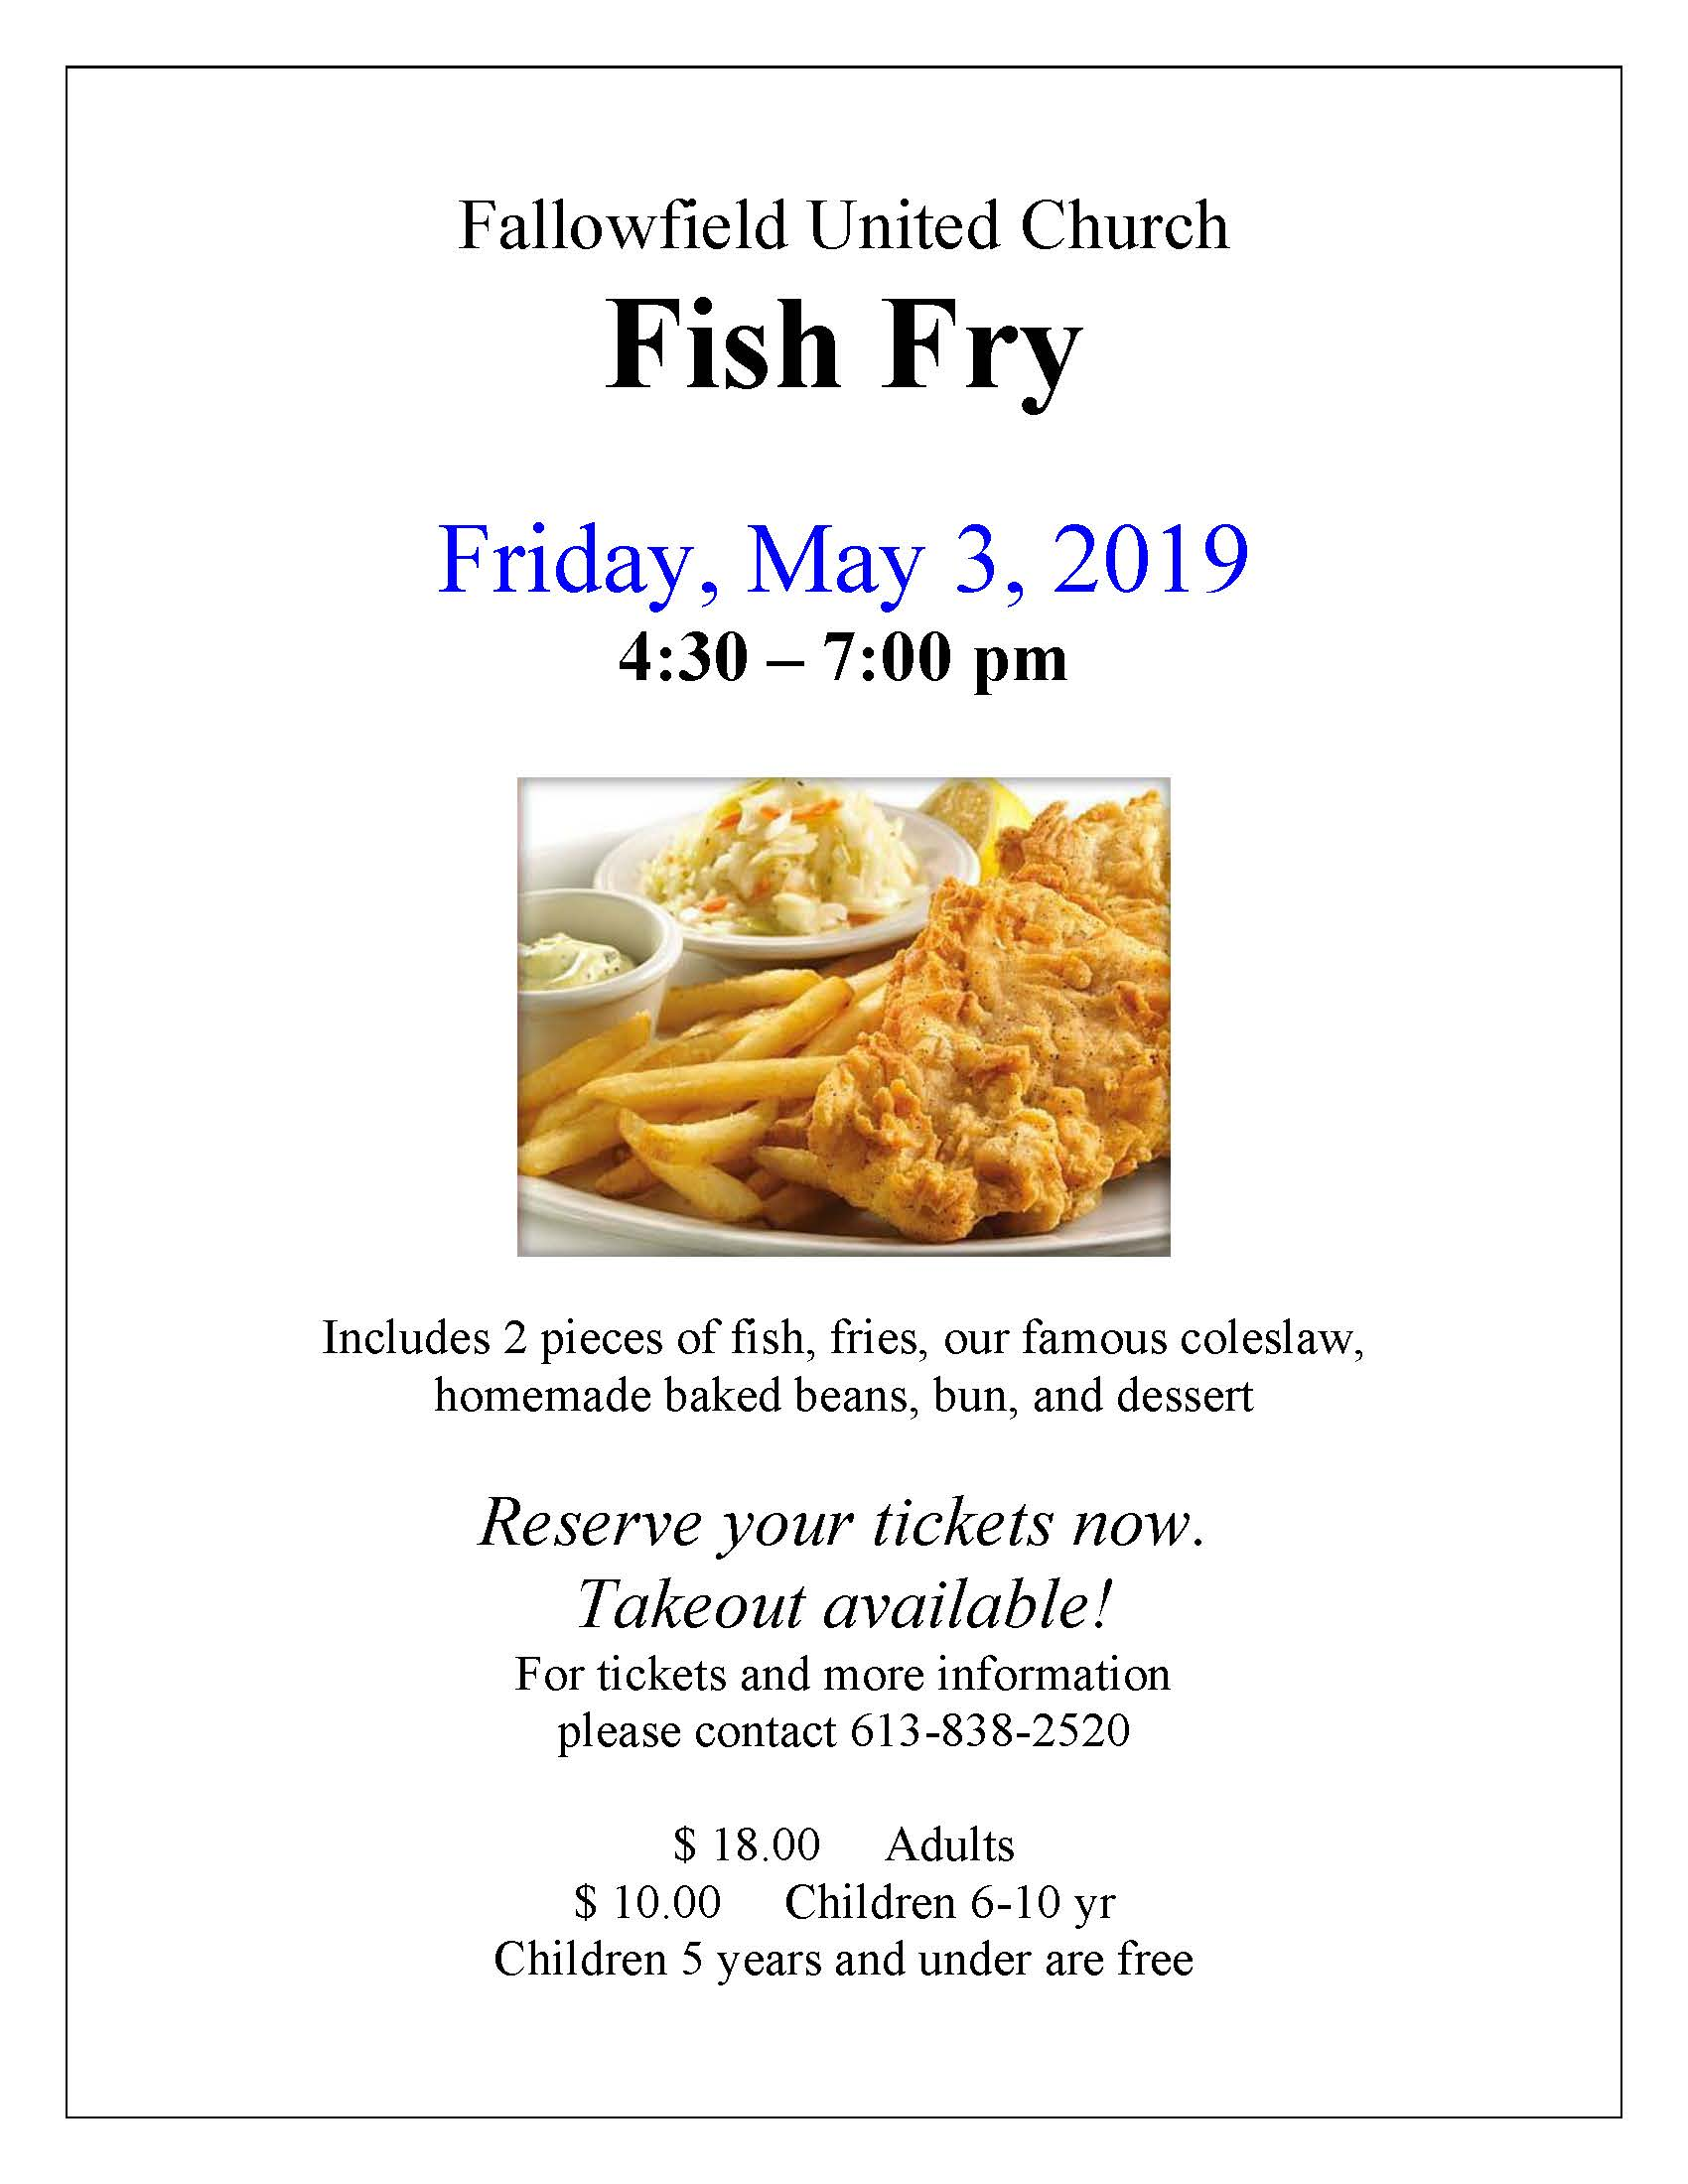 fish fry  supper ad 2019.jpg